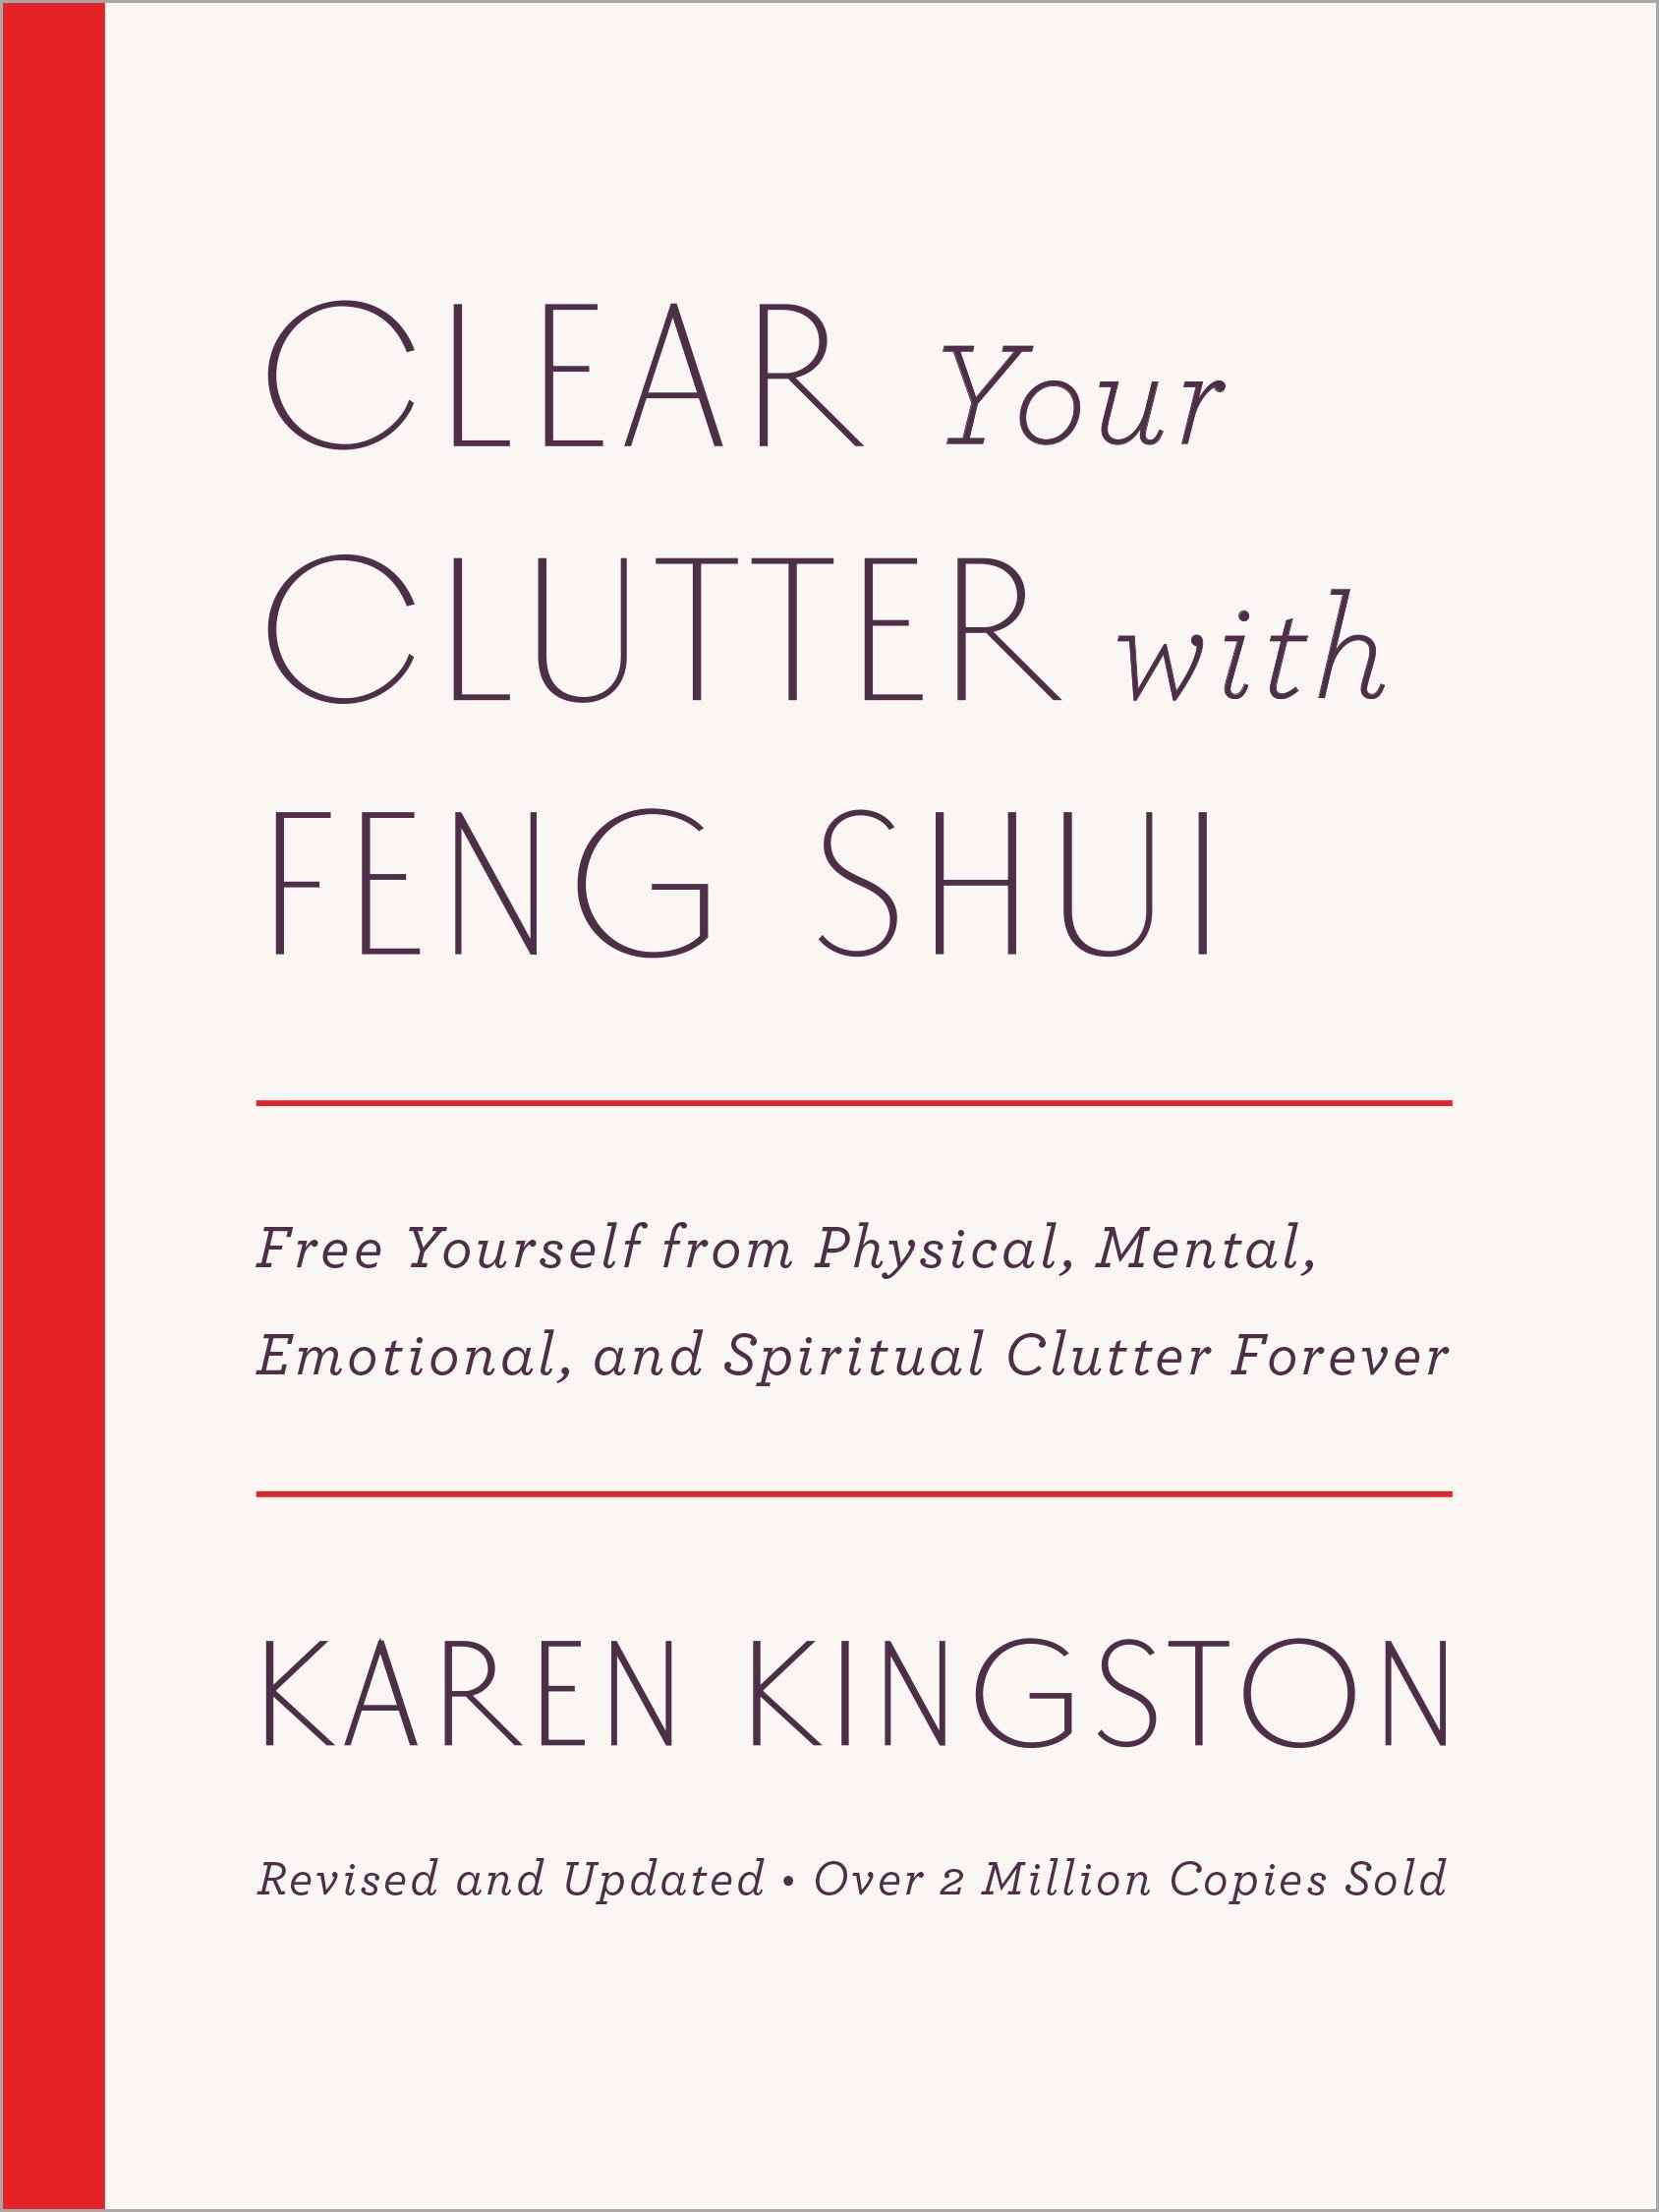 Clear Your Clutter With Feng Shui  Revised And Updated   Free Yourself From Physical Mental Emotional And Spiritual Clutter Forever